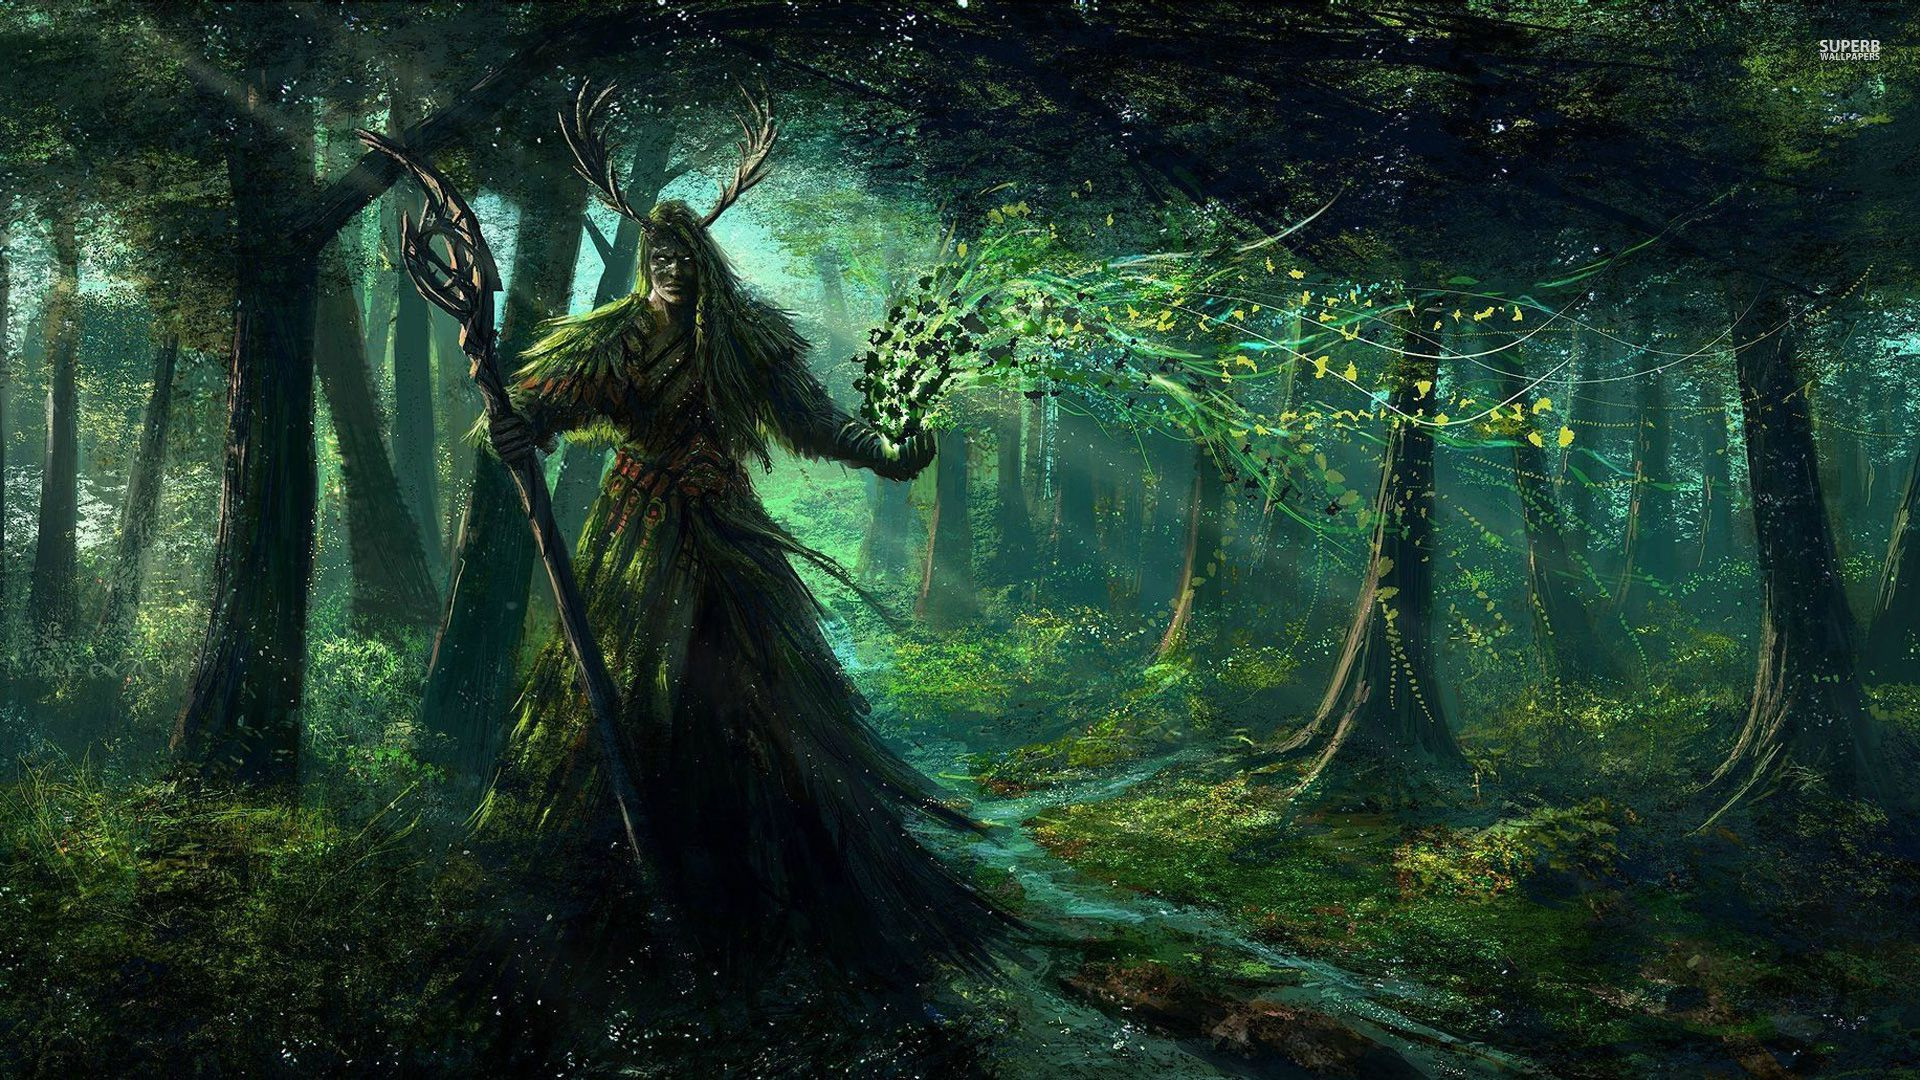 Who Were The Druids And When Did They Live?